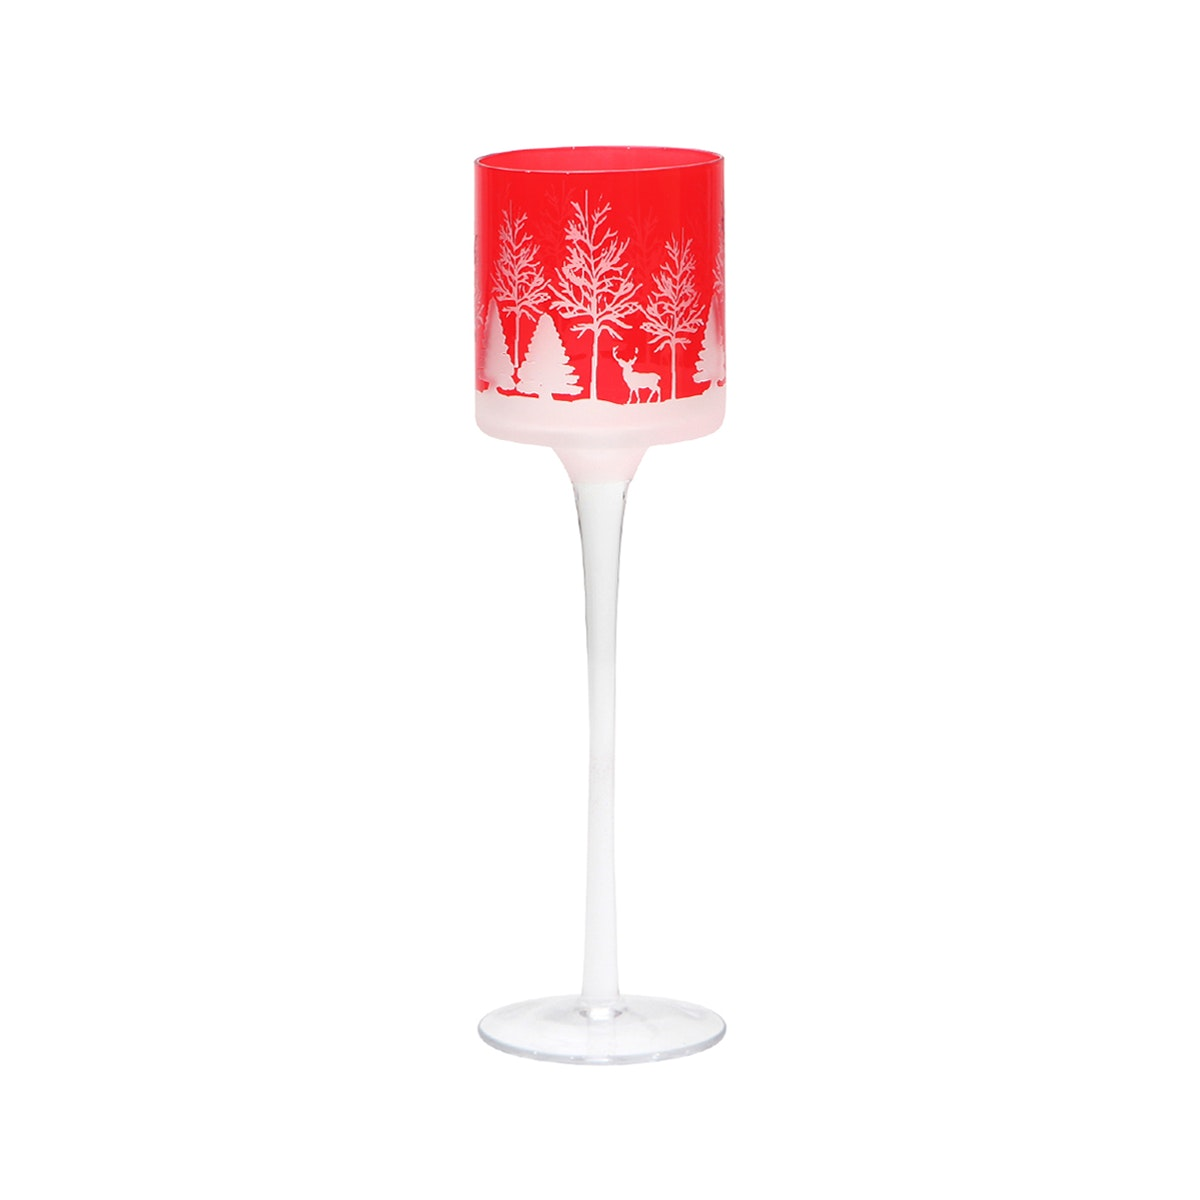 Vivere Hurricane Candle Holder cmas Red 9x30 cm